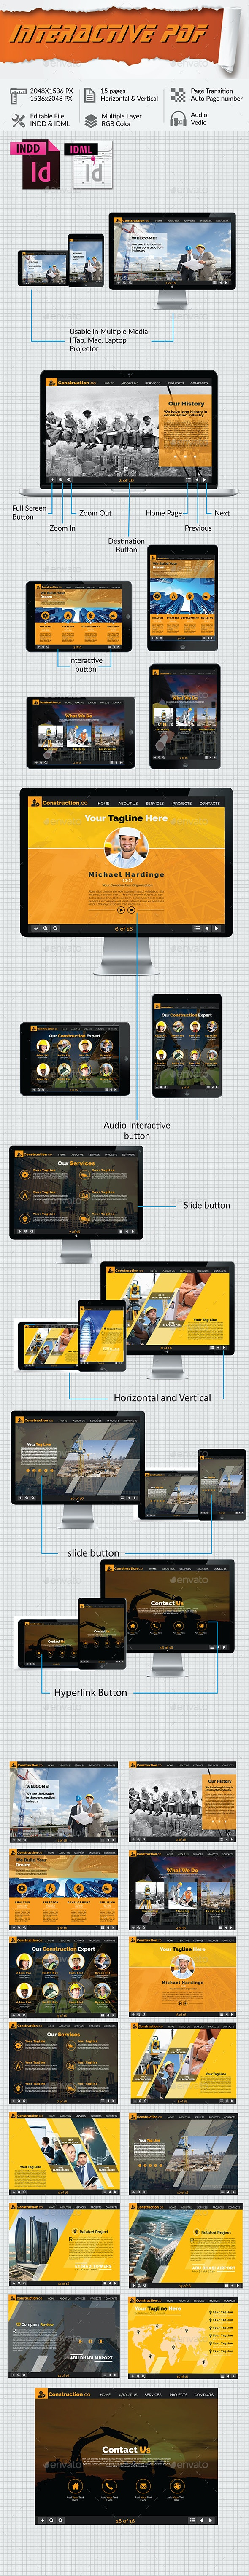 Real Estate, Construction and Builders Interactive  - Digital Magazines ePublishing